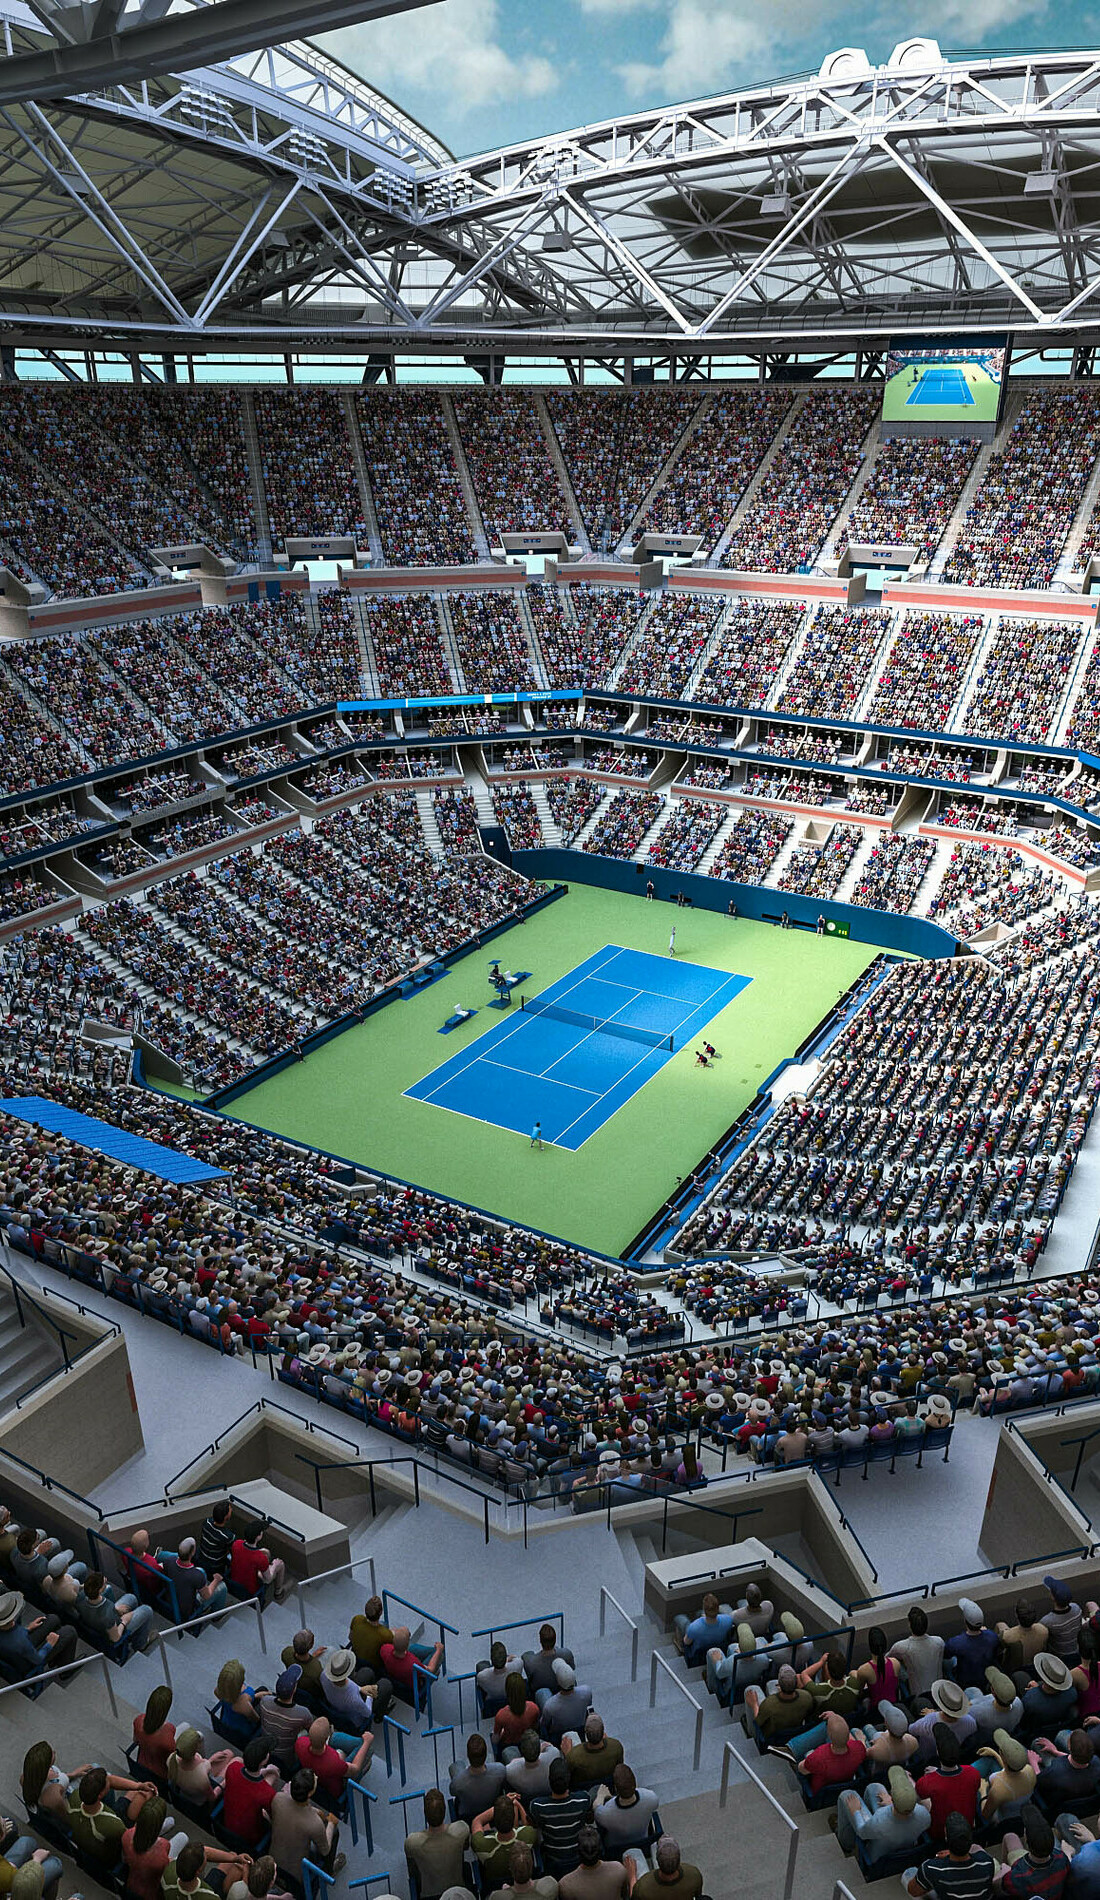 A US Open Tennis live event